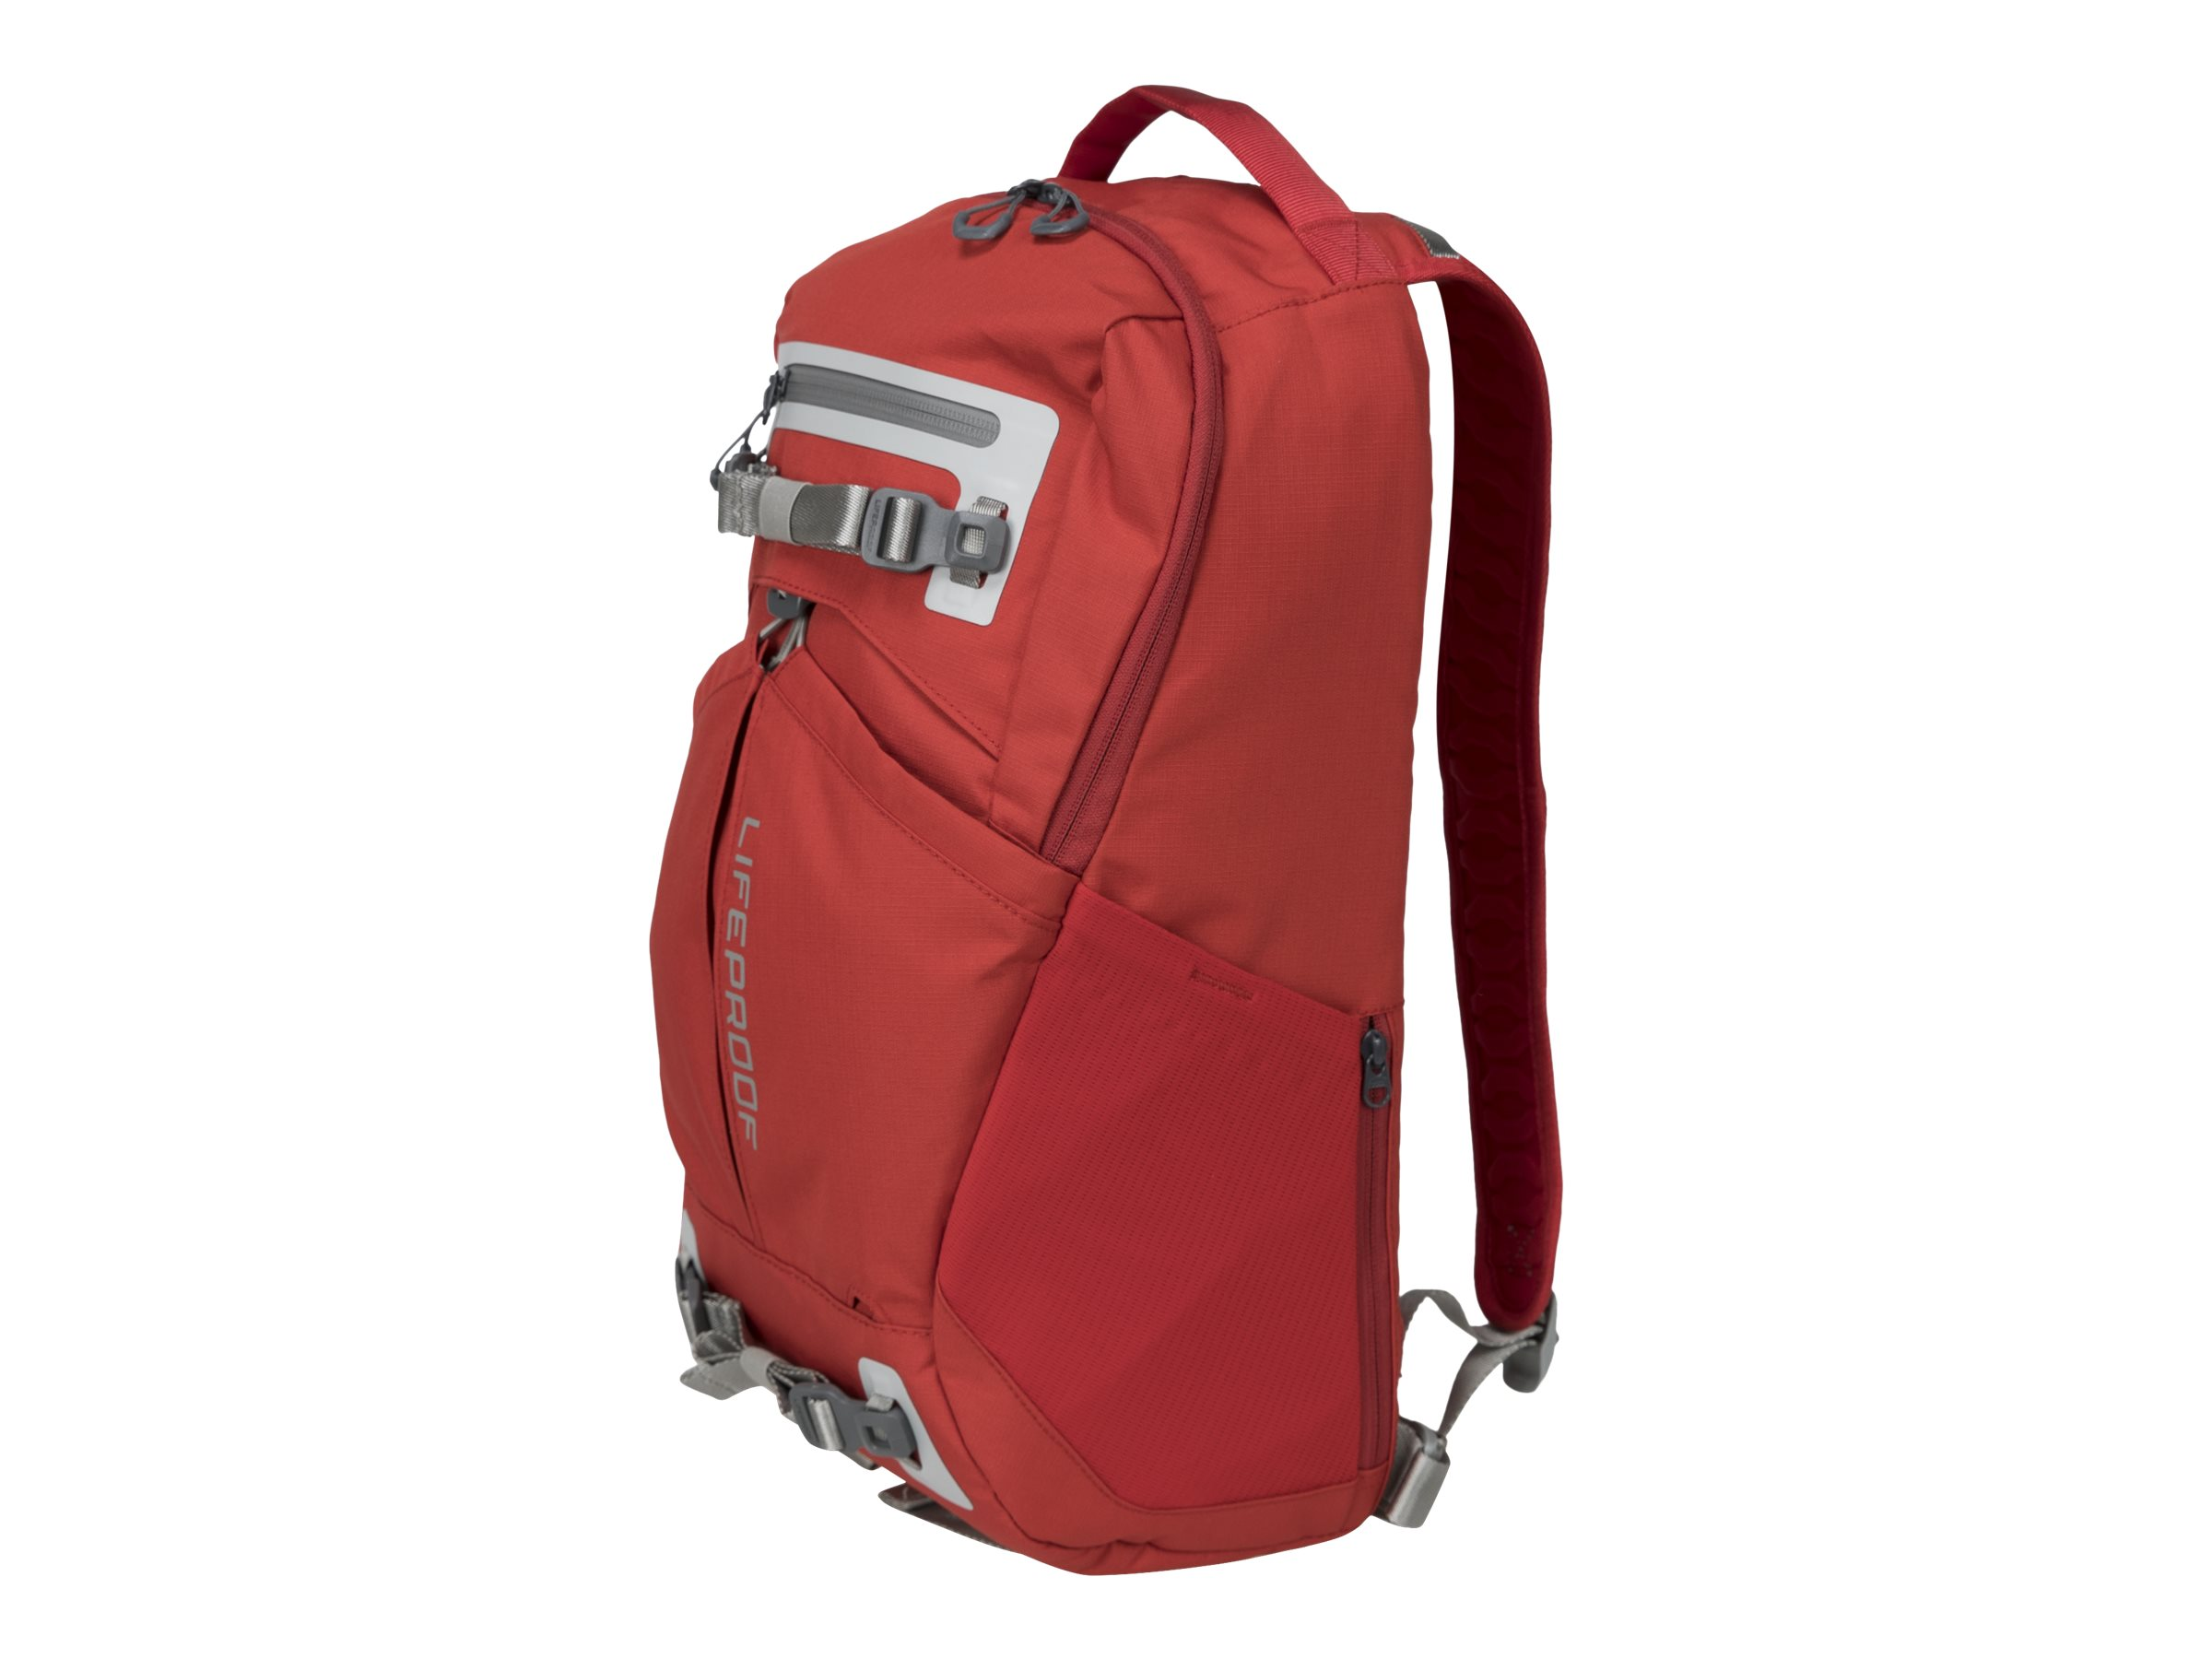 Lifeproof Squamish notebook carrying backpack